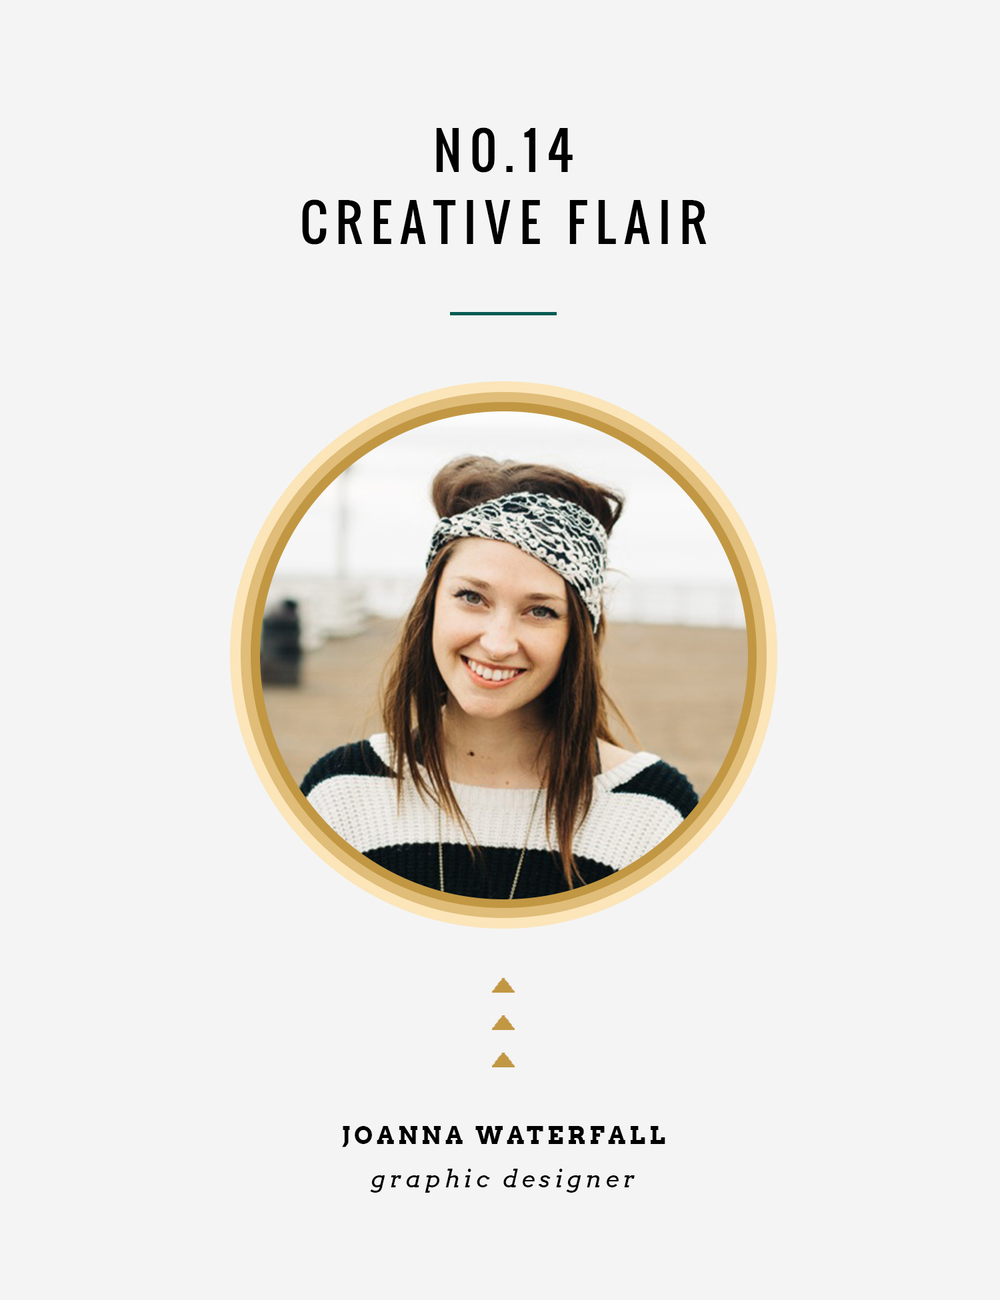 creativeflair_joannawaterfall_inbetween